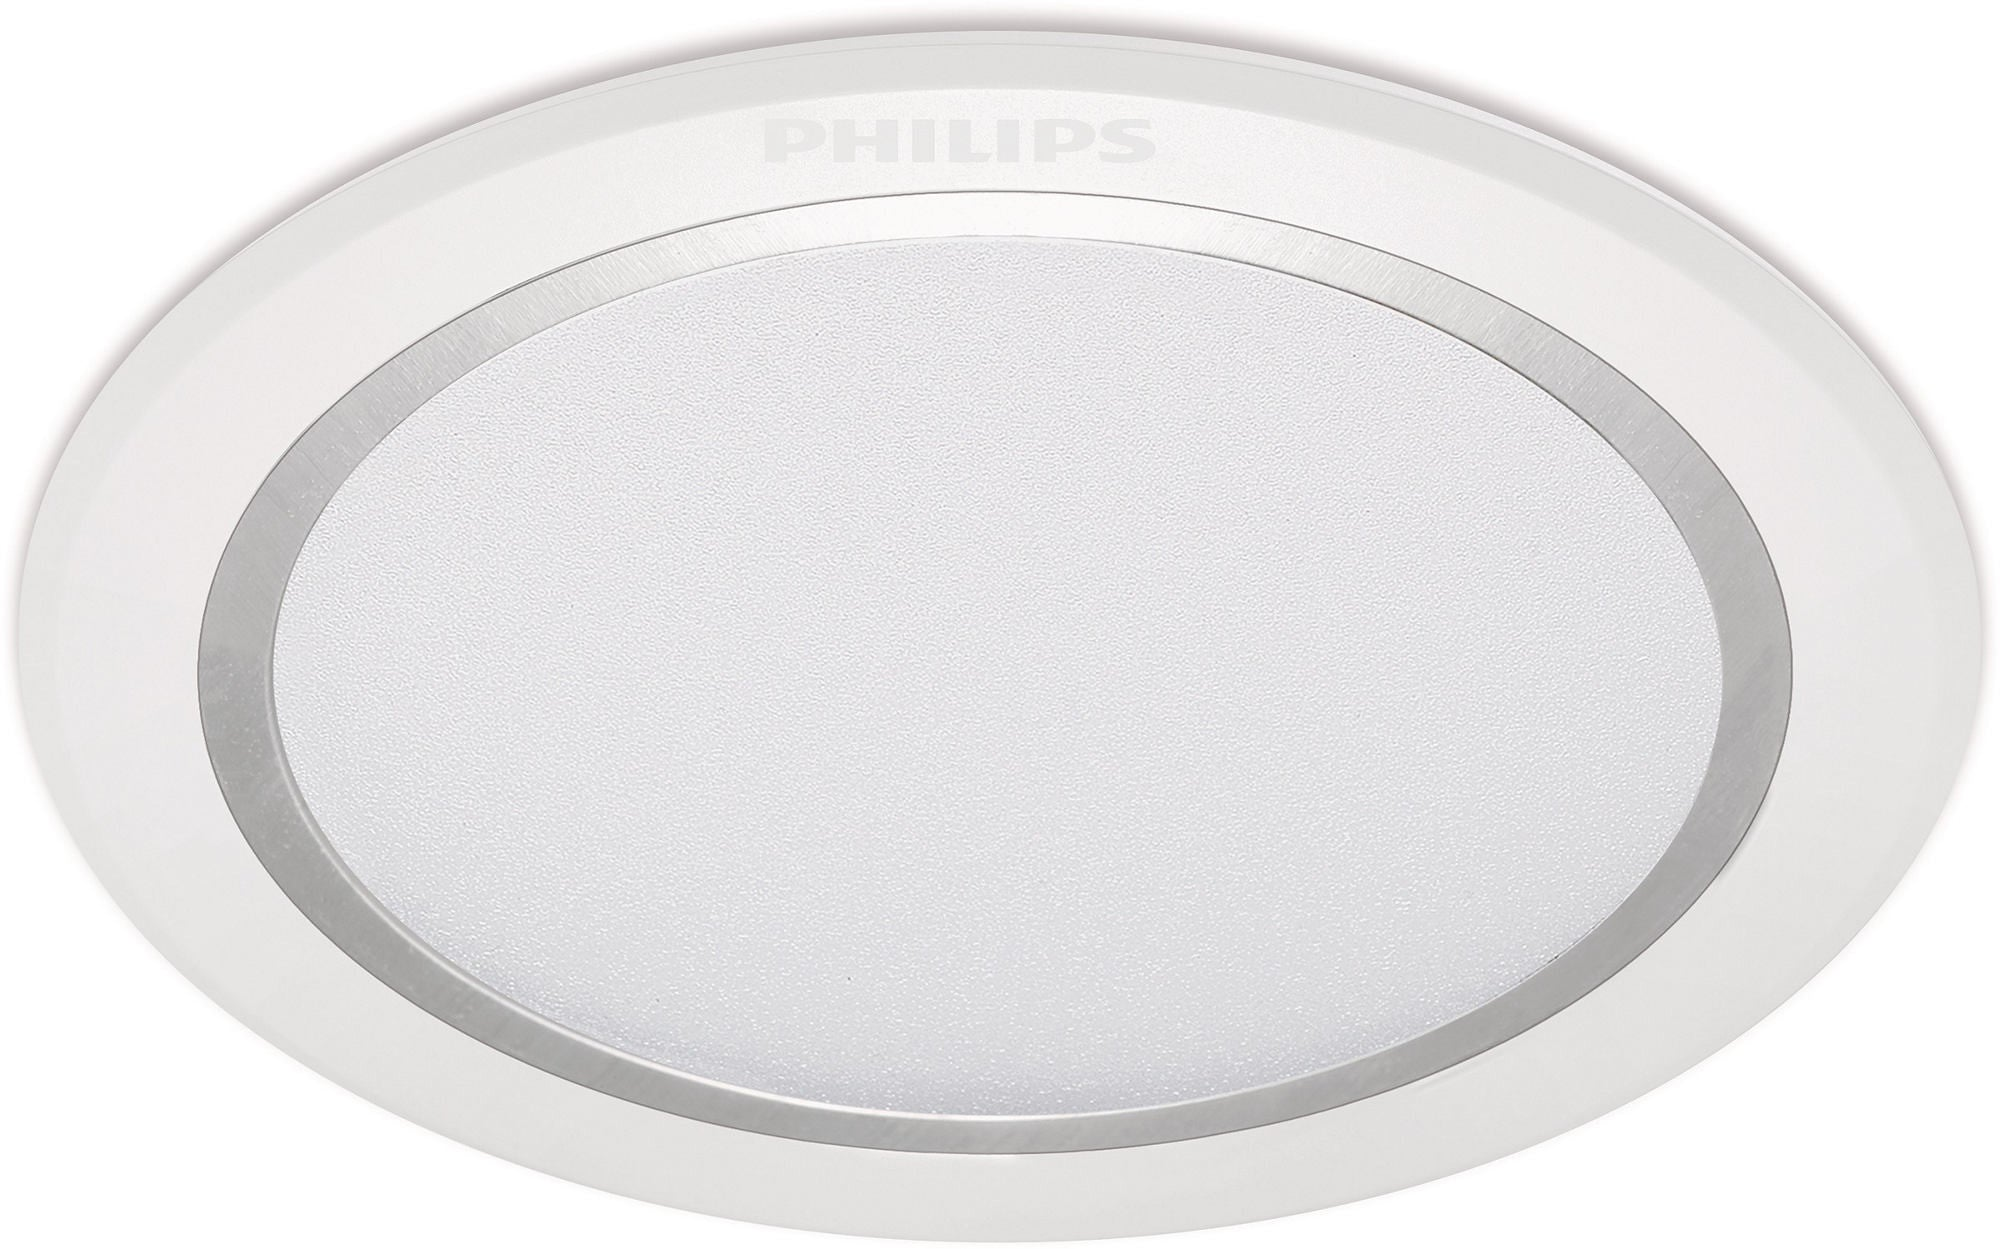 Philips LED Recessed Spot Light / Downlight (12x0 5W 2700K Warm White)